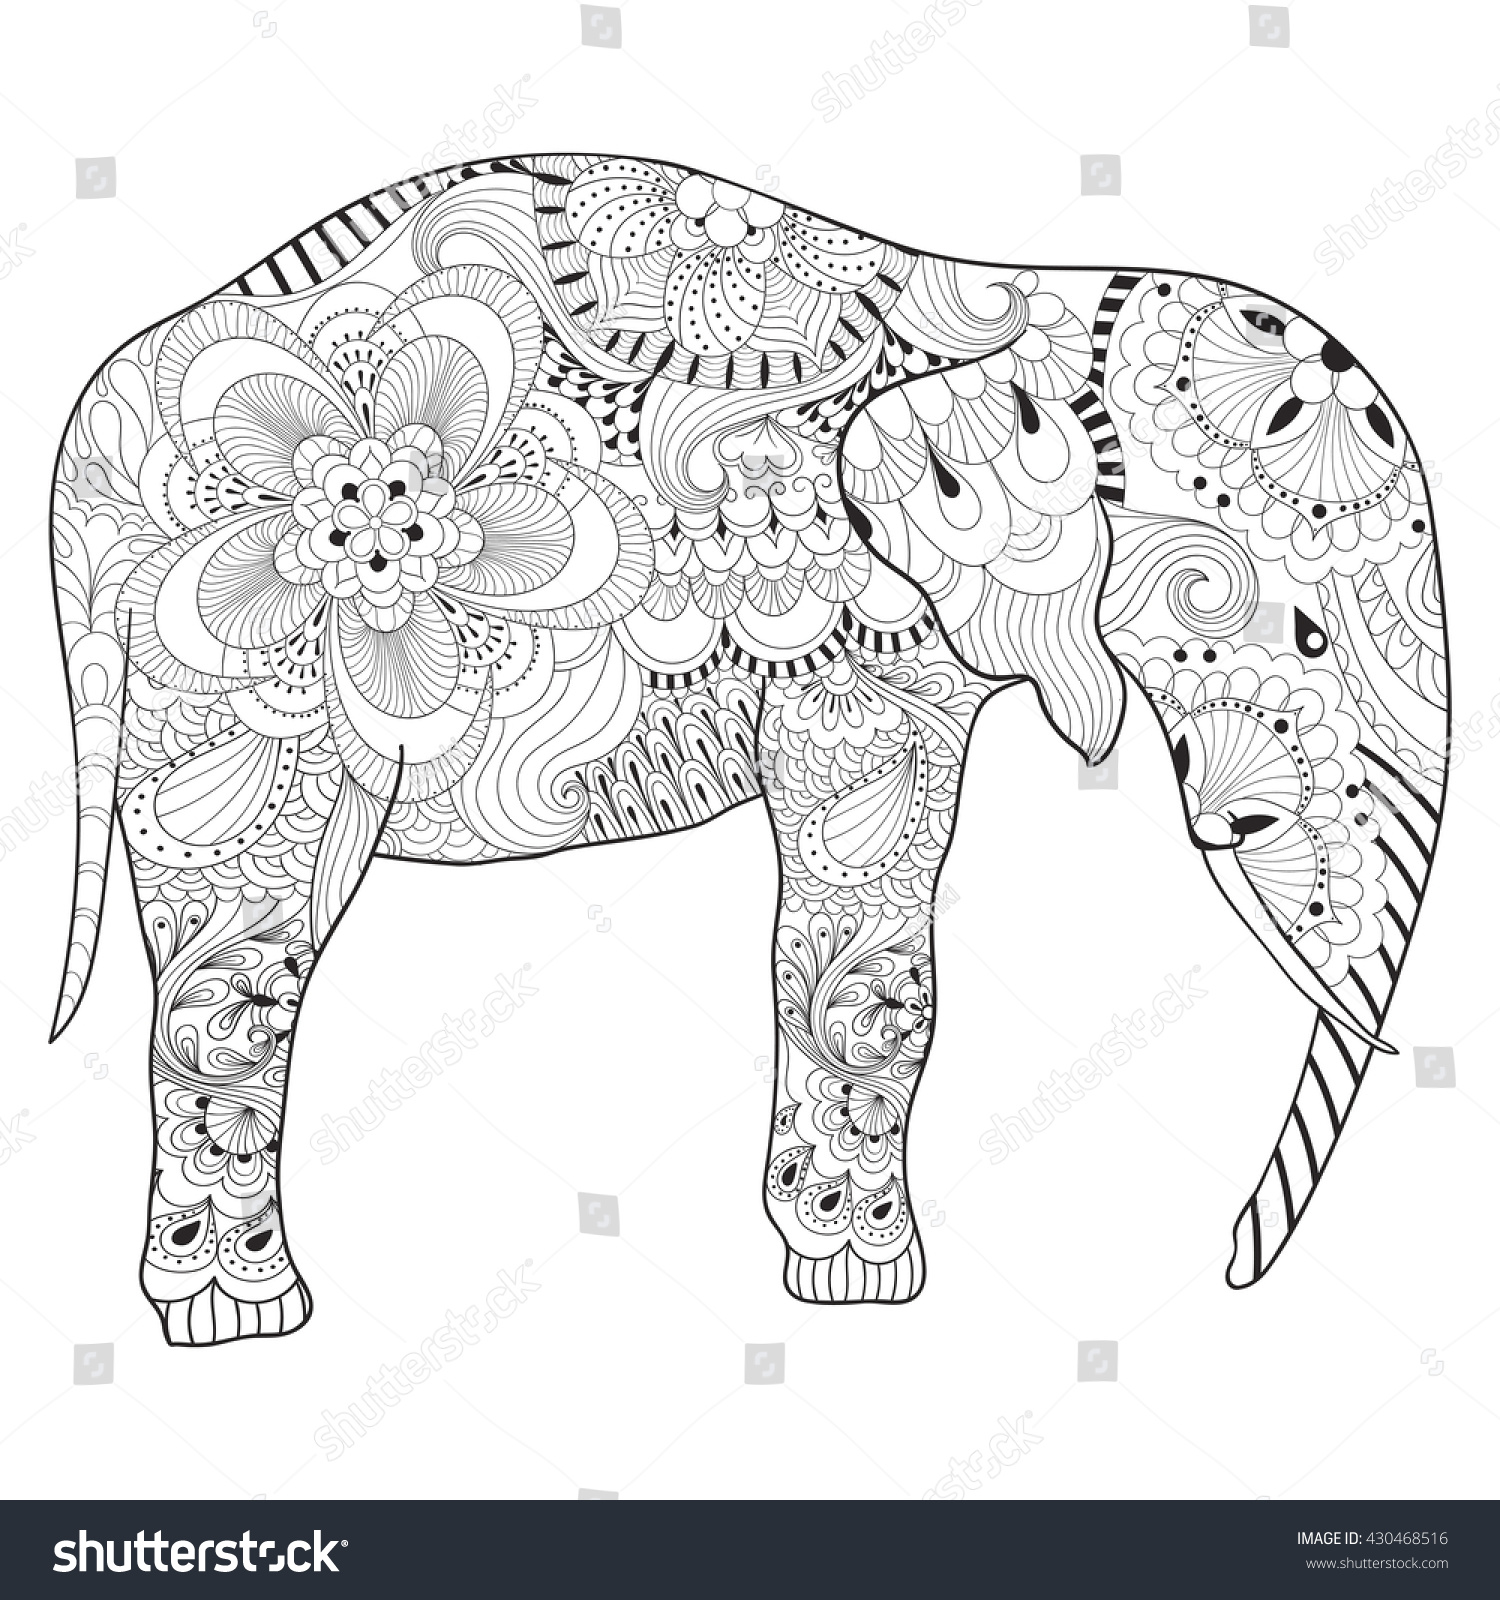 hand drawn zentangle elephant with mandala for adult antistress coloring pages art therapy post card - Art Therapy Coloring Pages Mandala